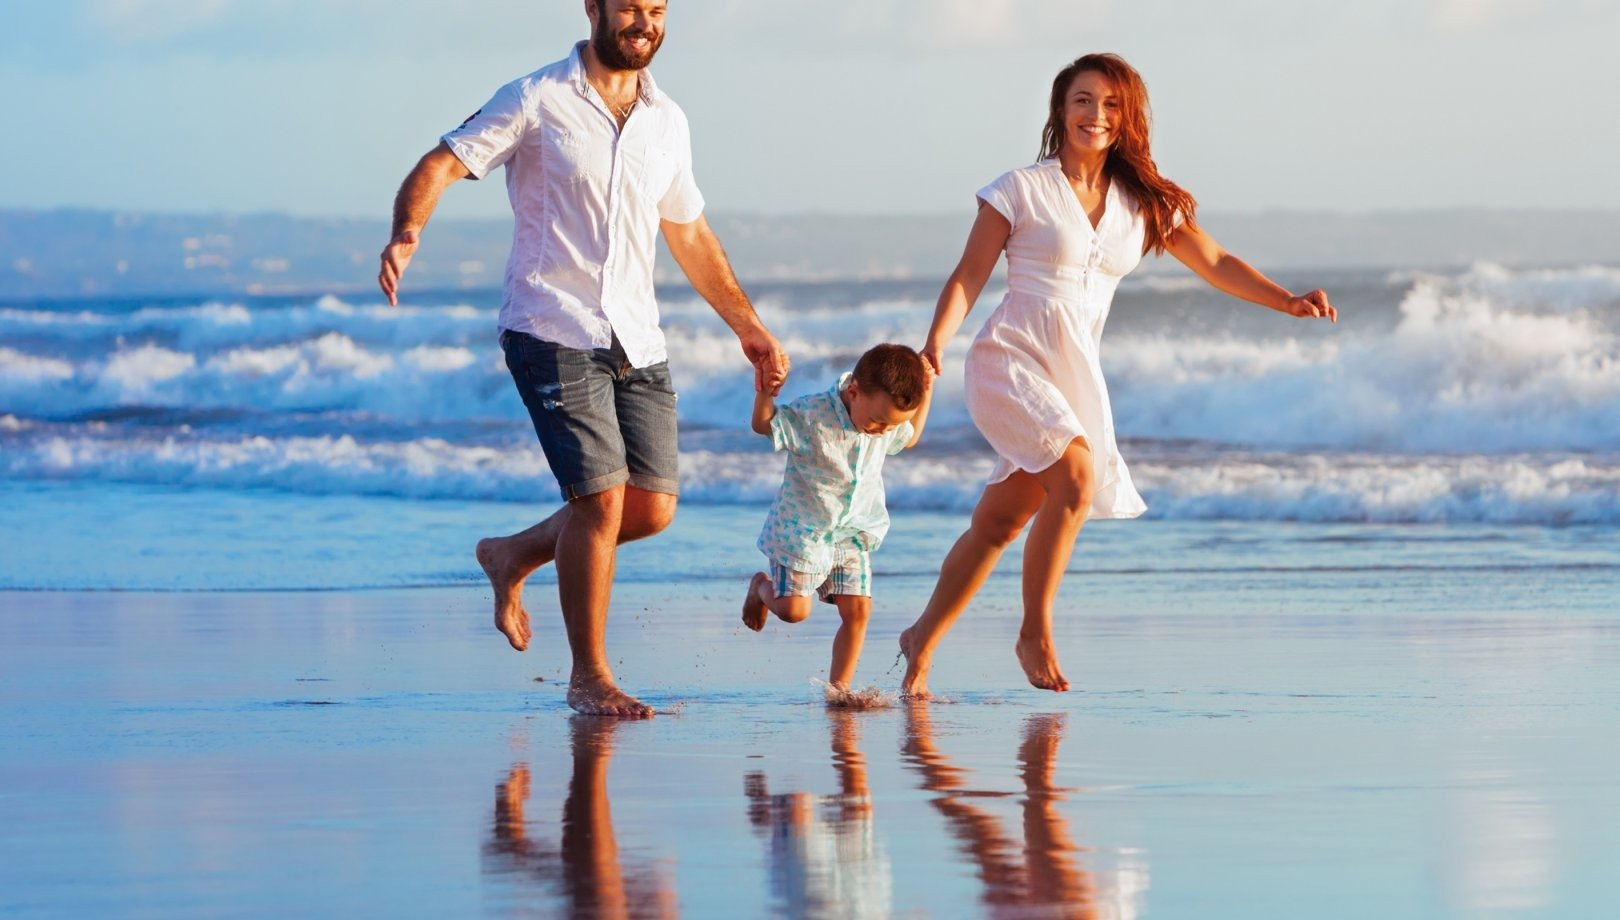 Carefree holiday by the sea